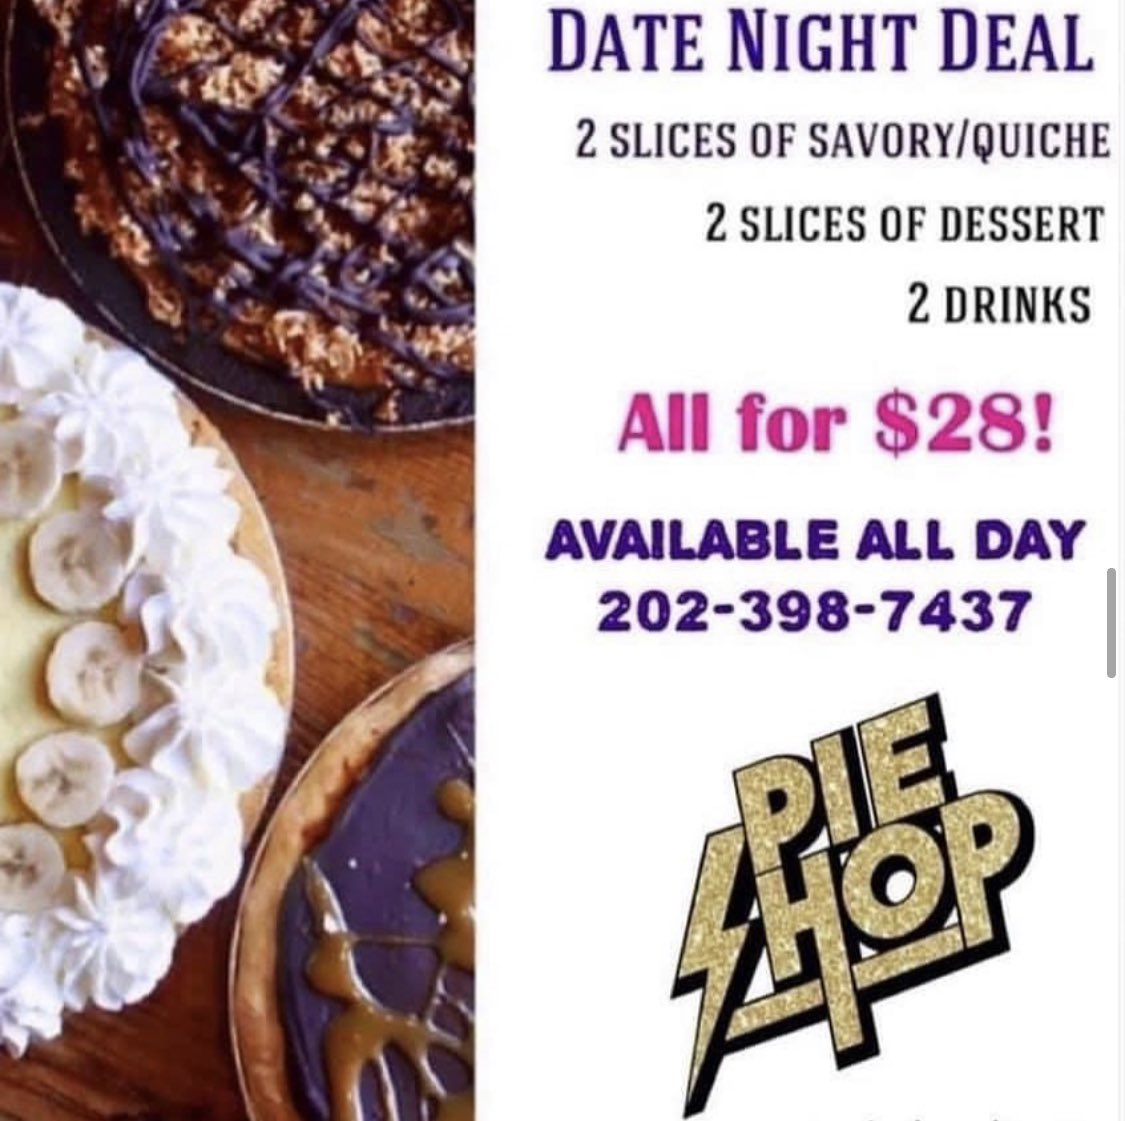 Date Night Deal is ON! Head on down for the best deal in town! Open til 9pm for curbside pickup & delivery. Find Pie Shop on UberEats, Postmates, ChowNow & DoorDash. Thanks for supporting your local pie shop! #datenight #deals #supportlocal #mondaymotivation #supportsmallbusiness